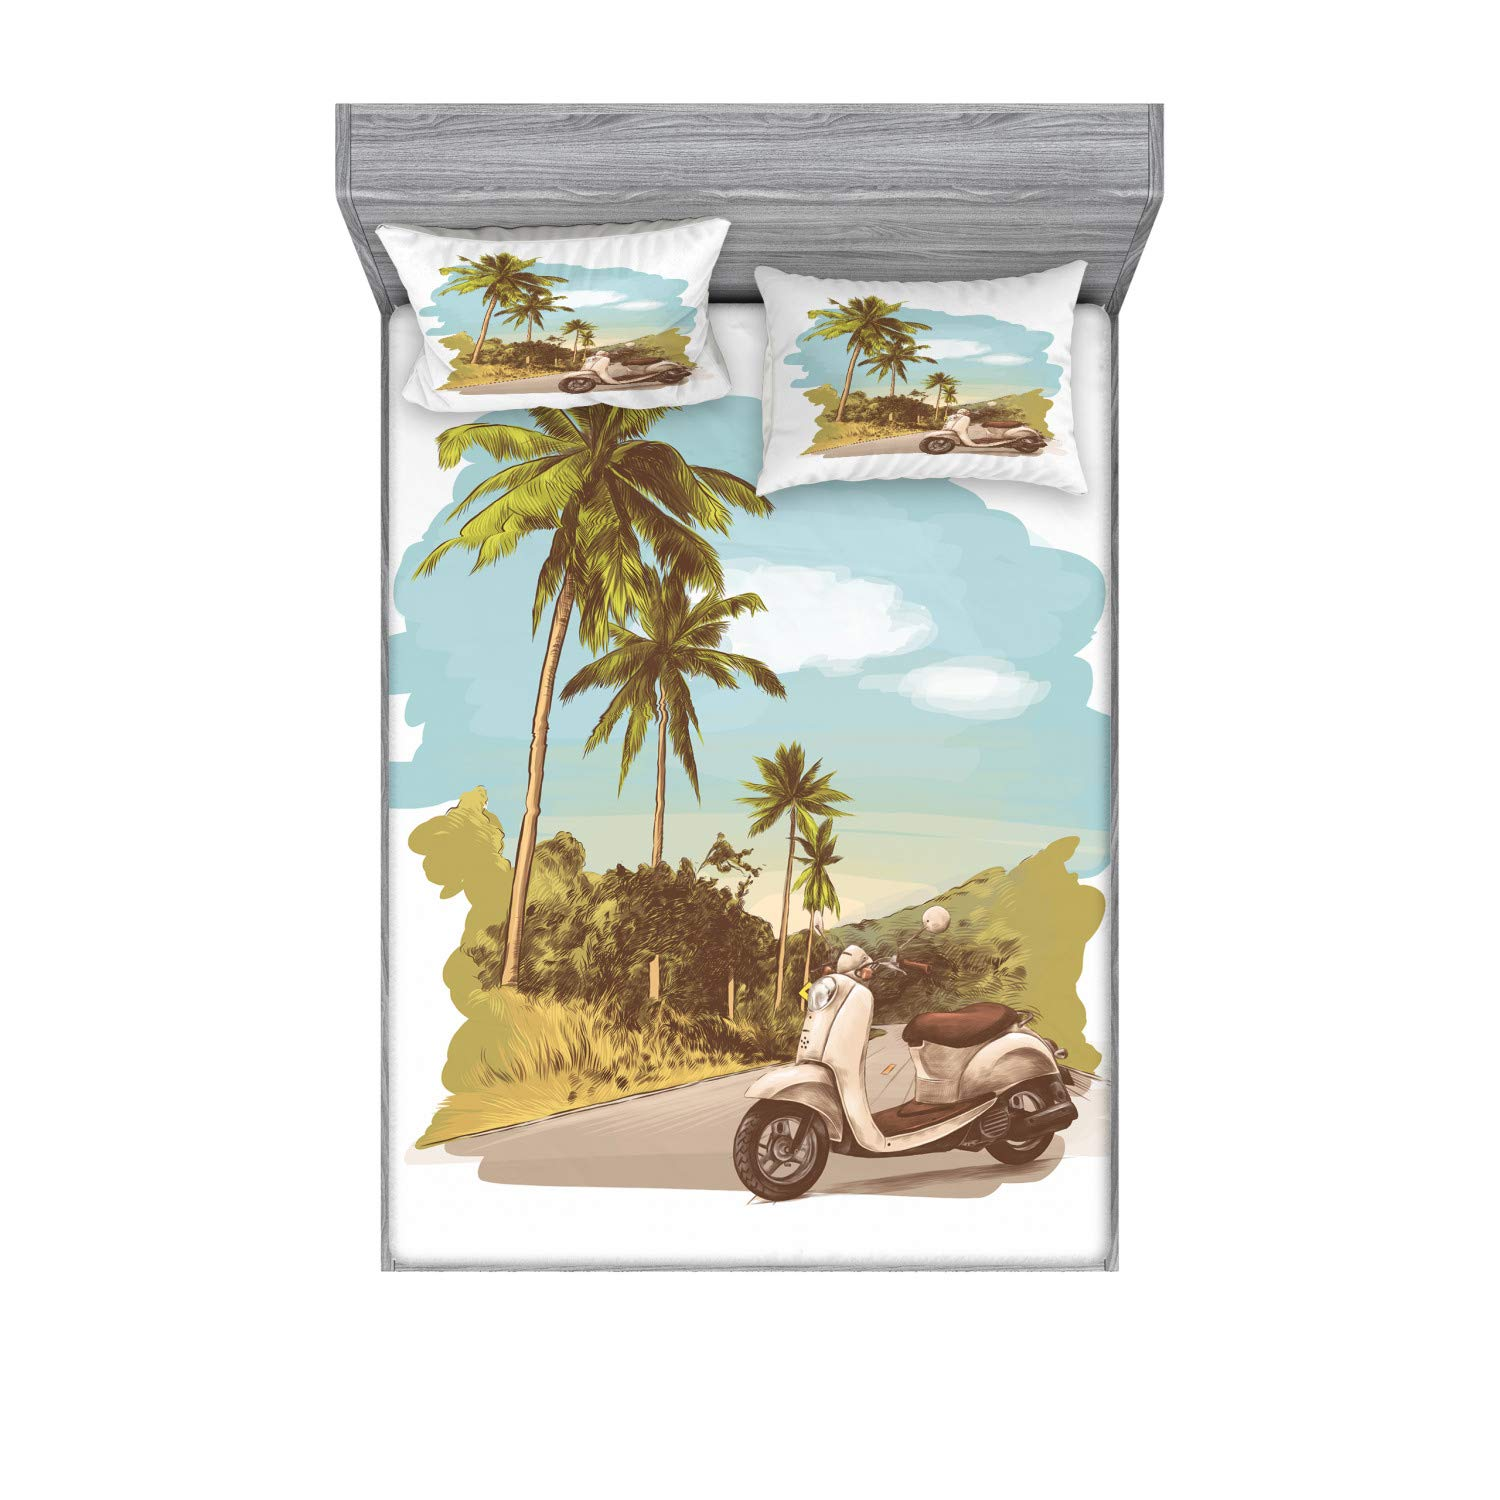 Ambesonne Retro Bedding Set with Sheet & Covers, Faded Effect Vintage Scooter Stands on The Road Jungle with Palm Trees on The Edges, Printed Bedroom Decor 2 Shams, Queen, Multicolor by Ambesonne